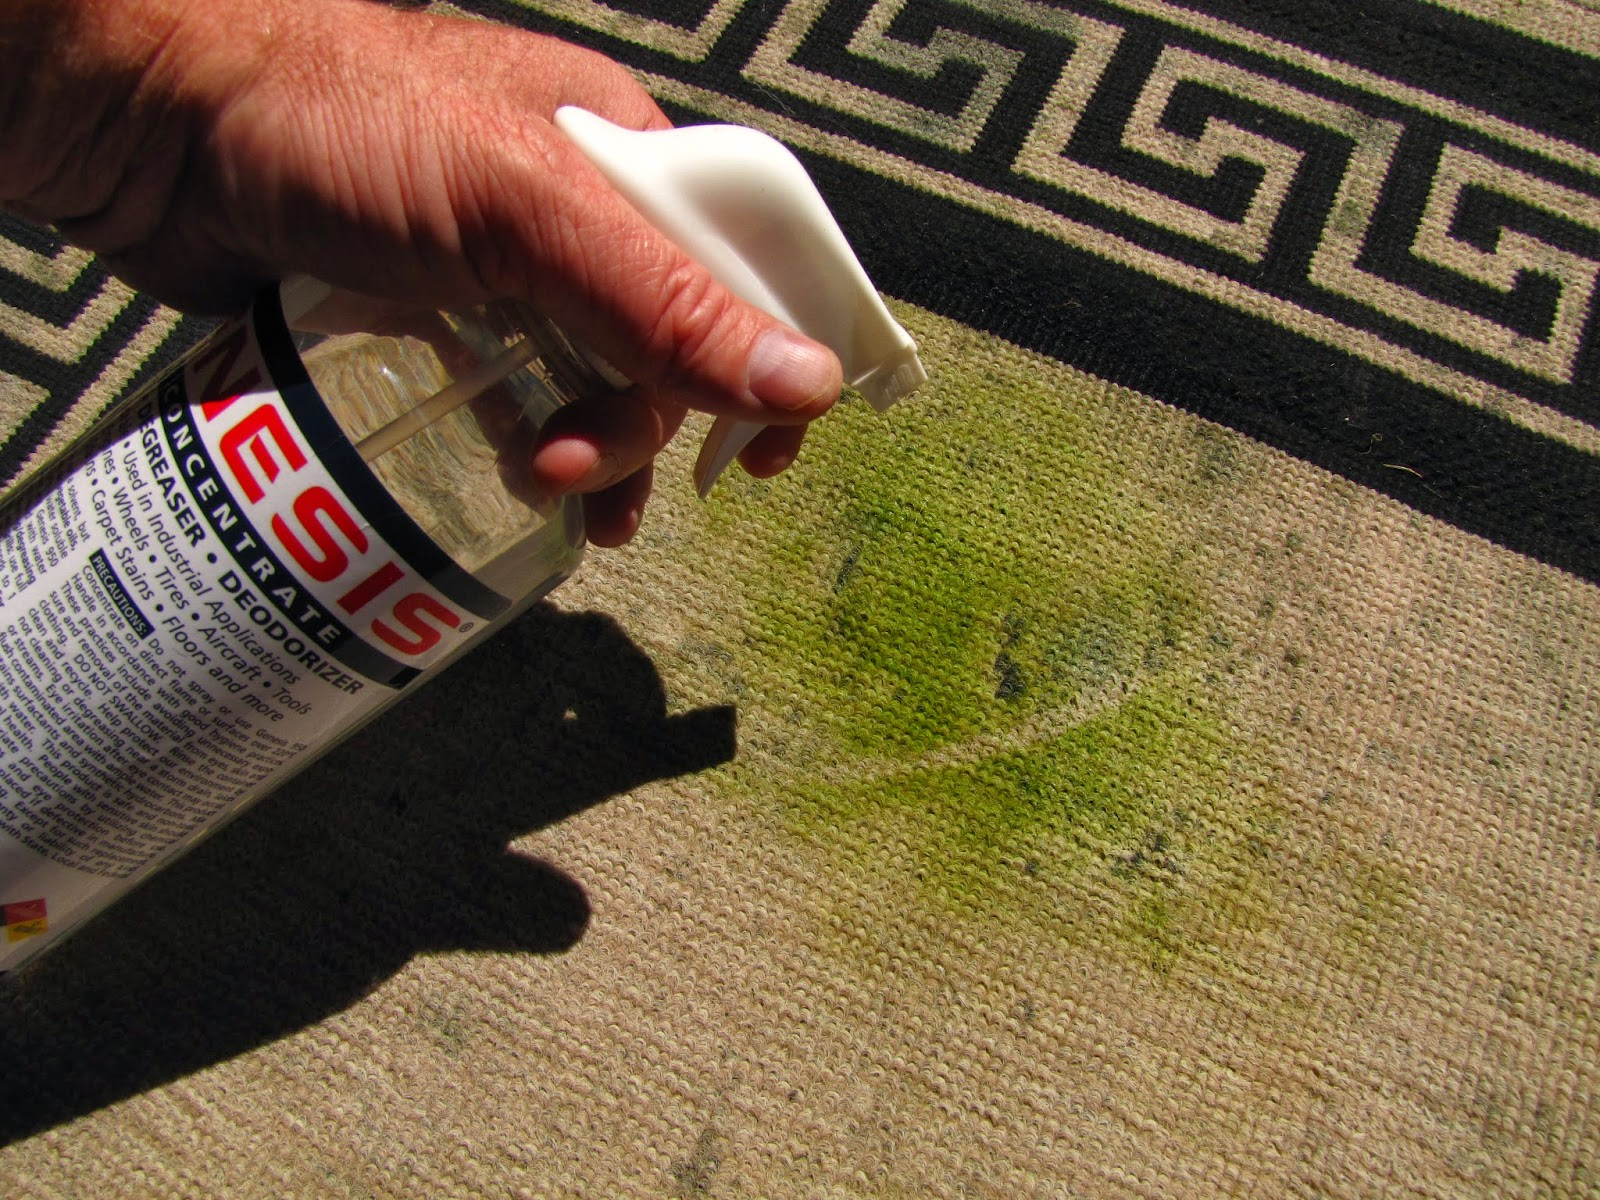 Genesis 950 Cleaning Tips And Tricks: DIY Carpet Cleaning